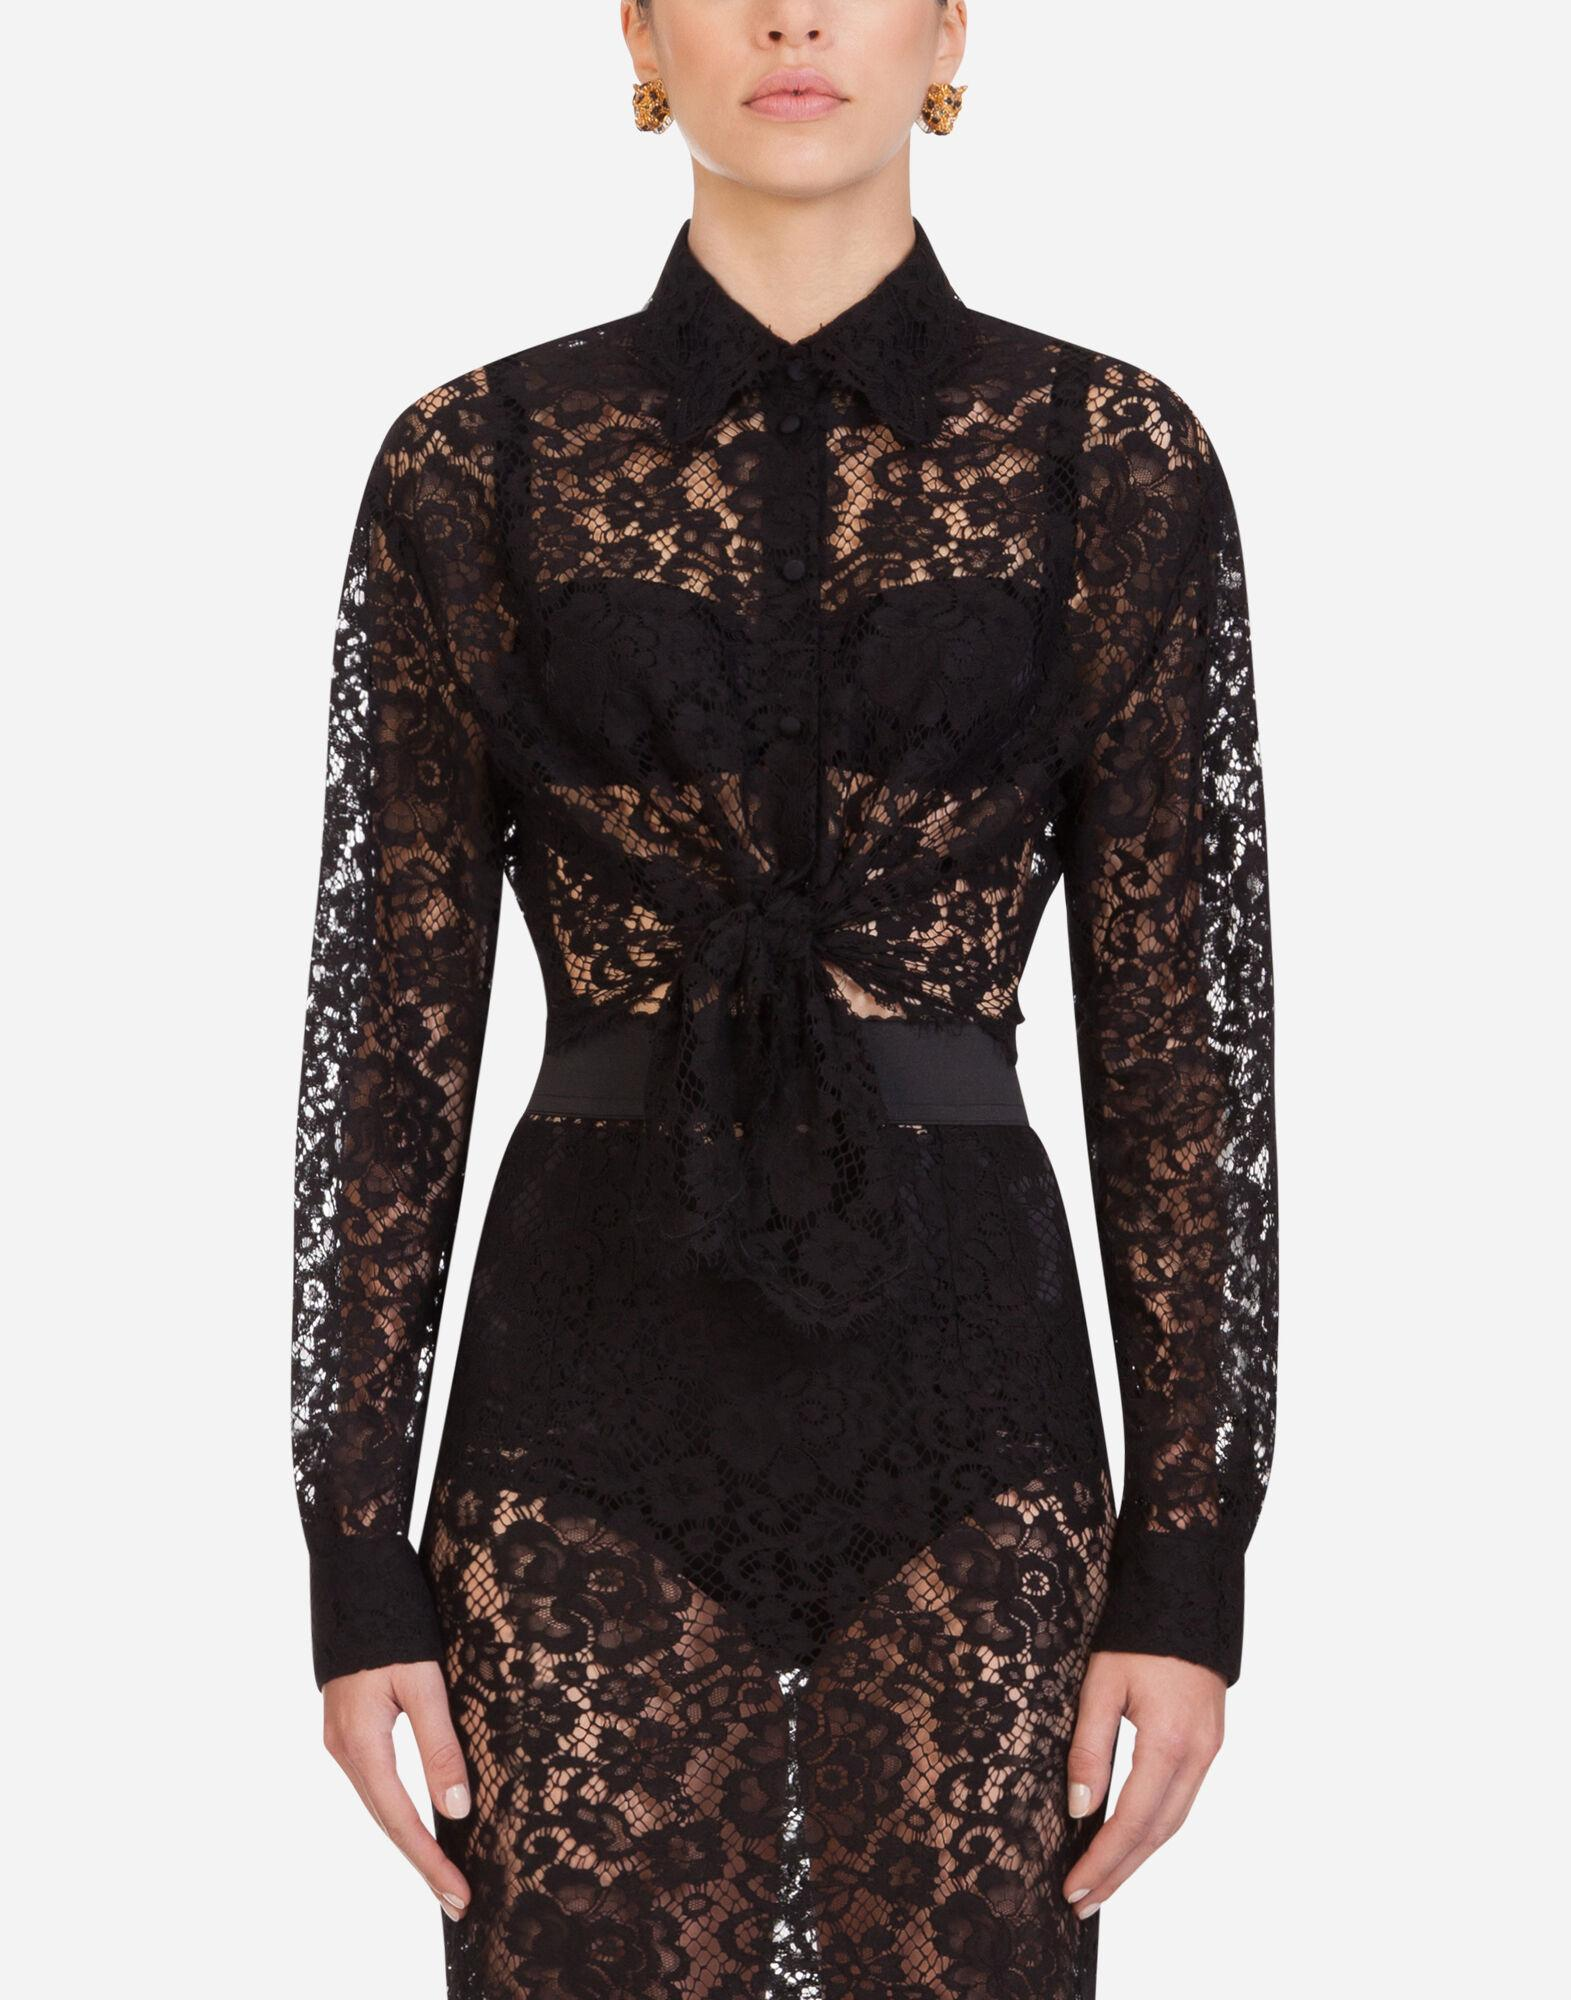 Short lace shirt with bow